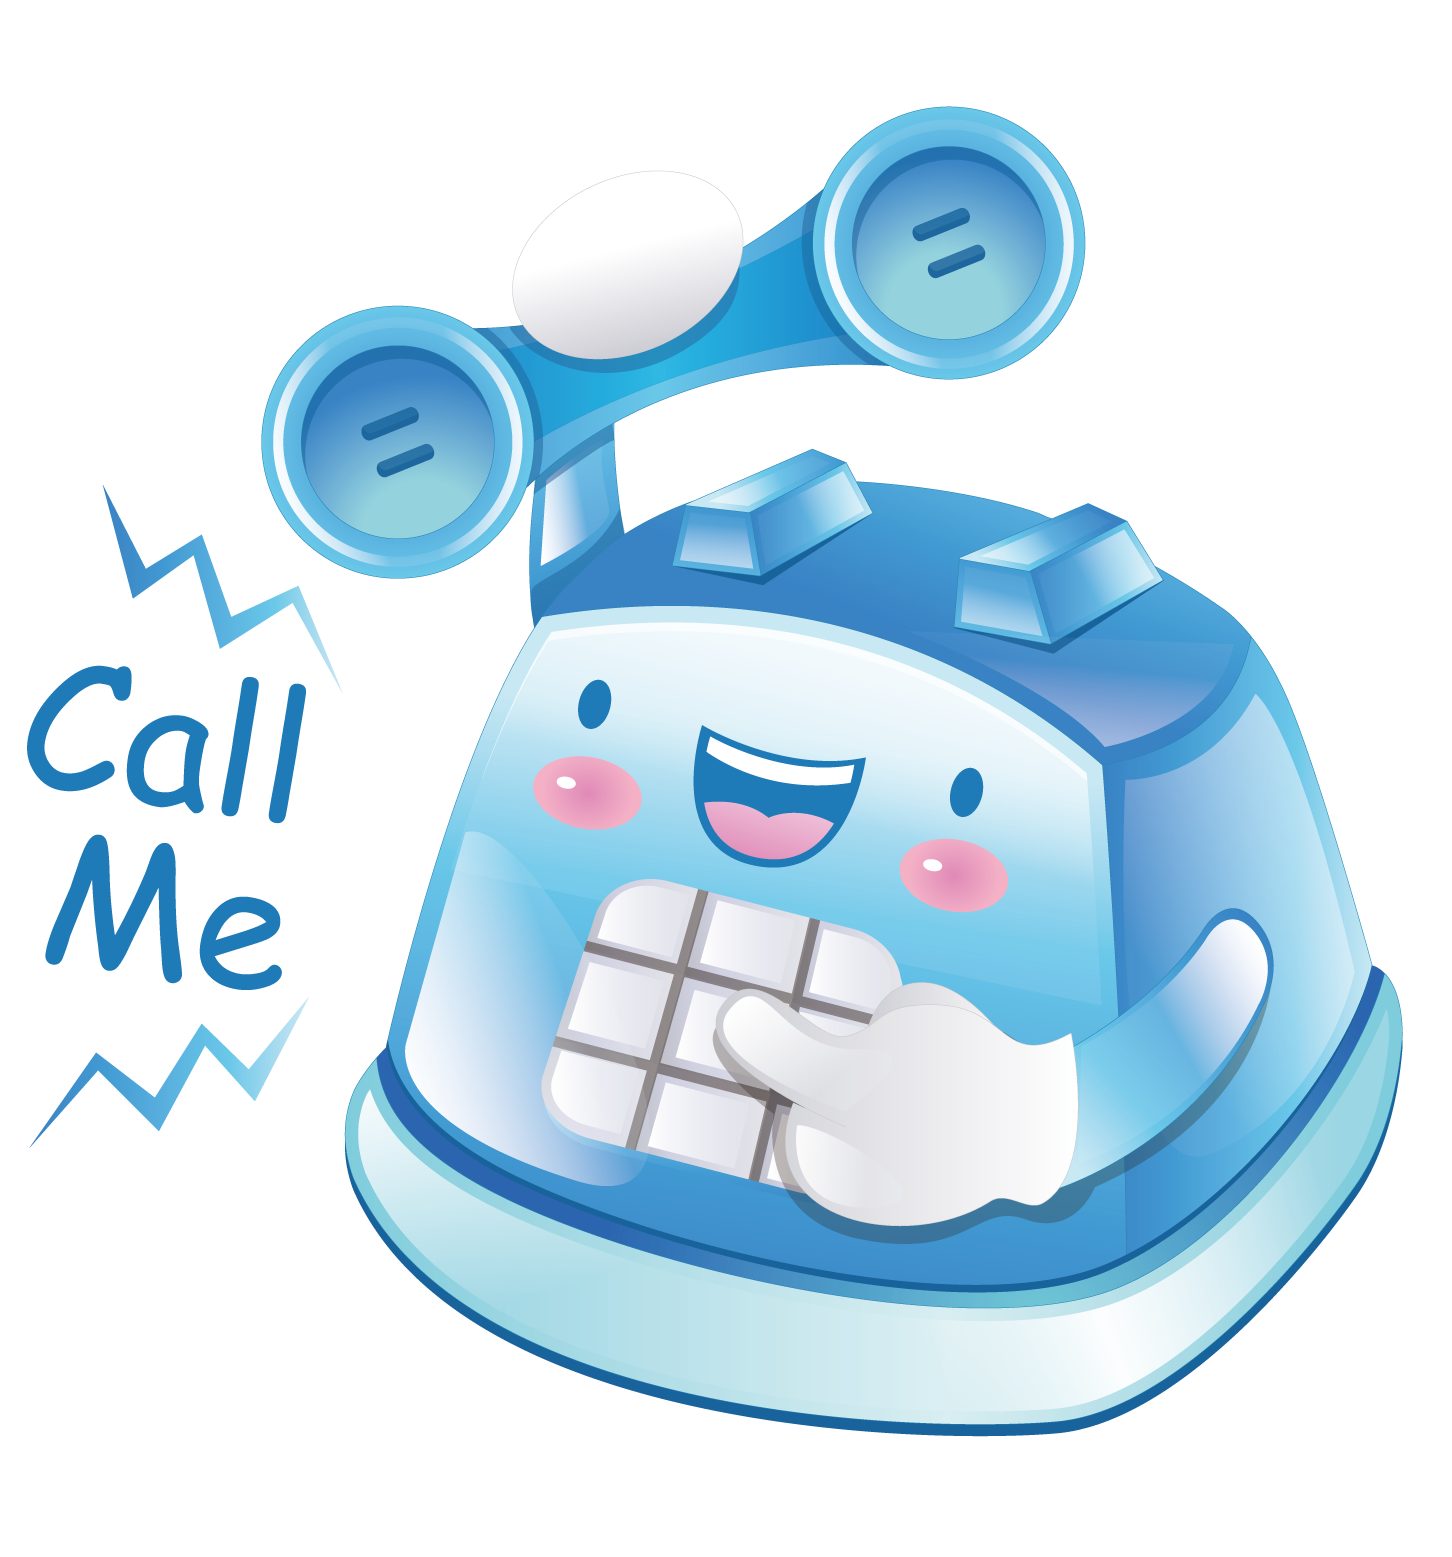 Telephone clipart toy phone. Booth mobile blue cartoon